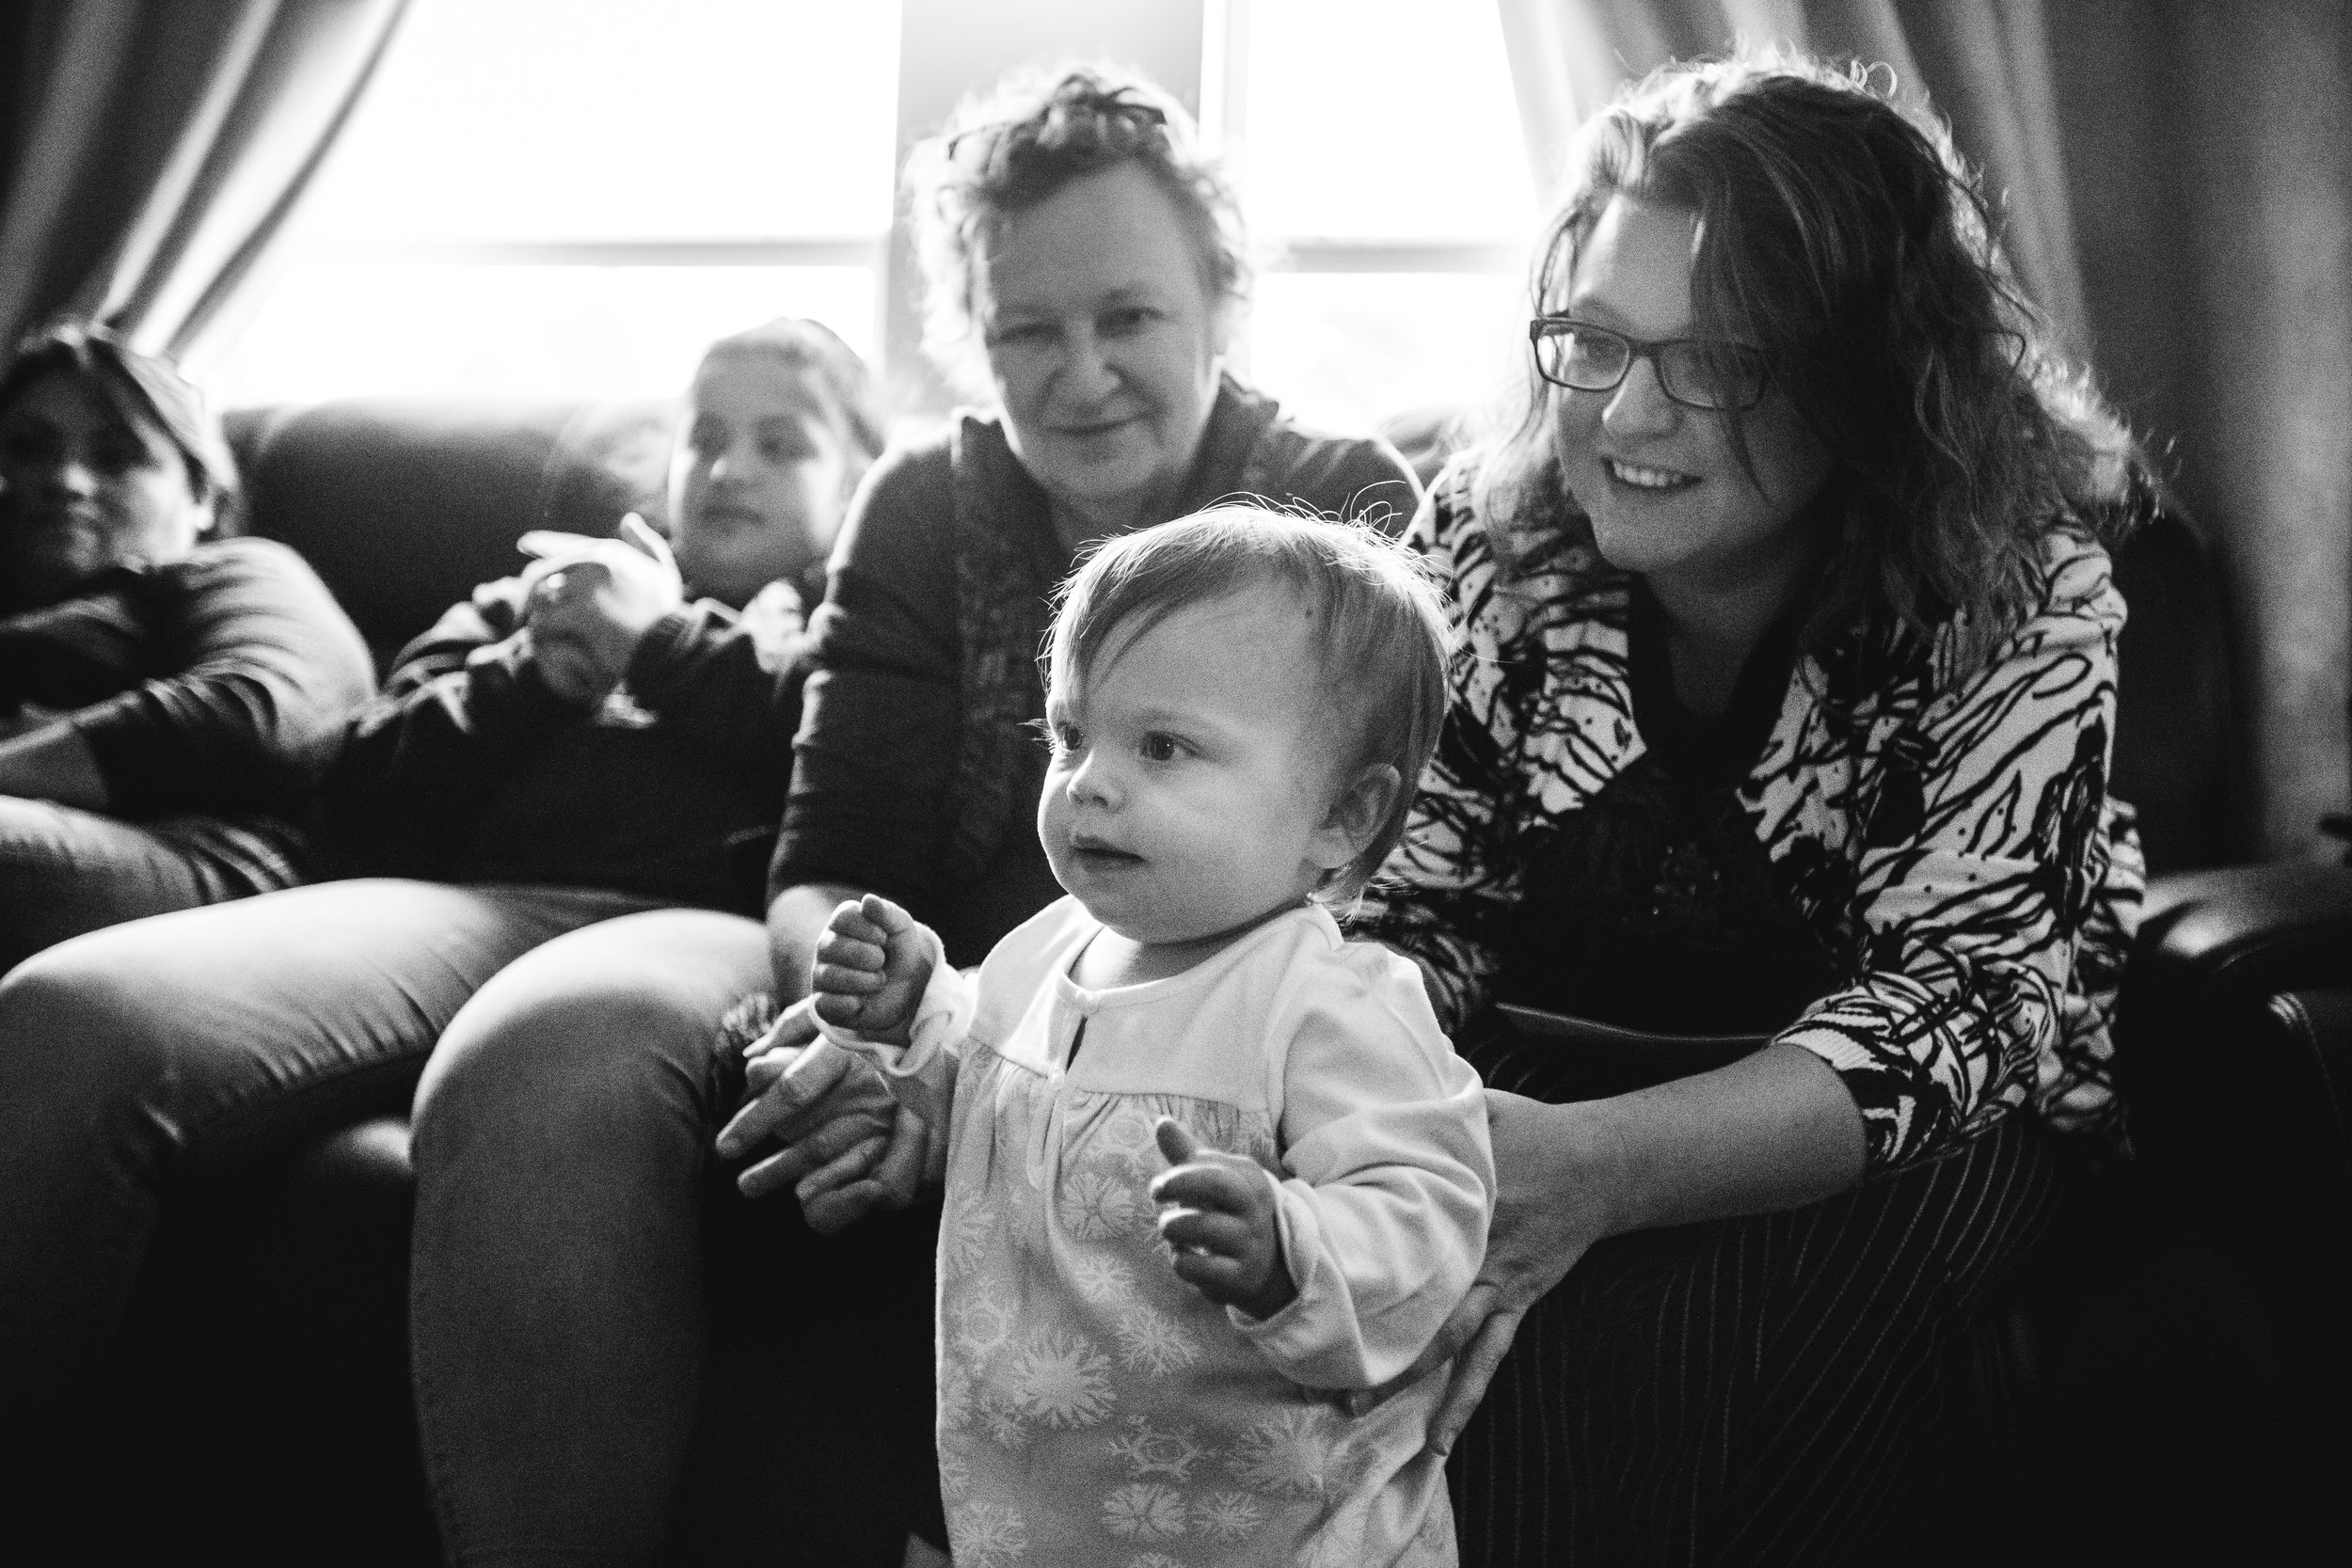 family-photographer-houston-one-year-old-birthday-party-10.jpg